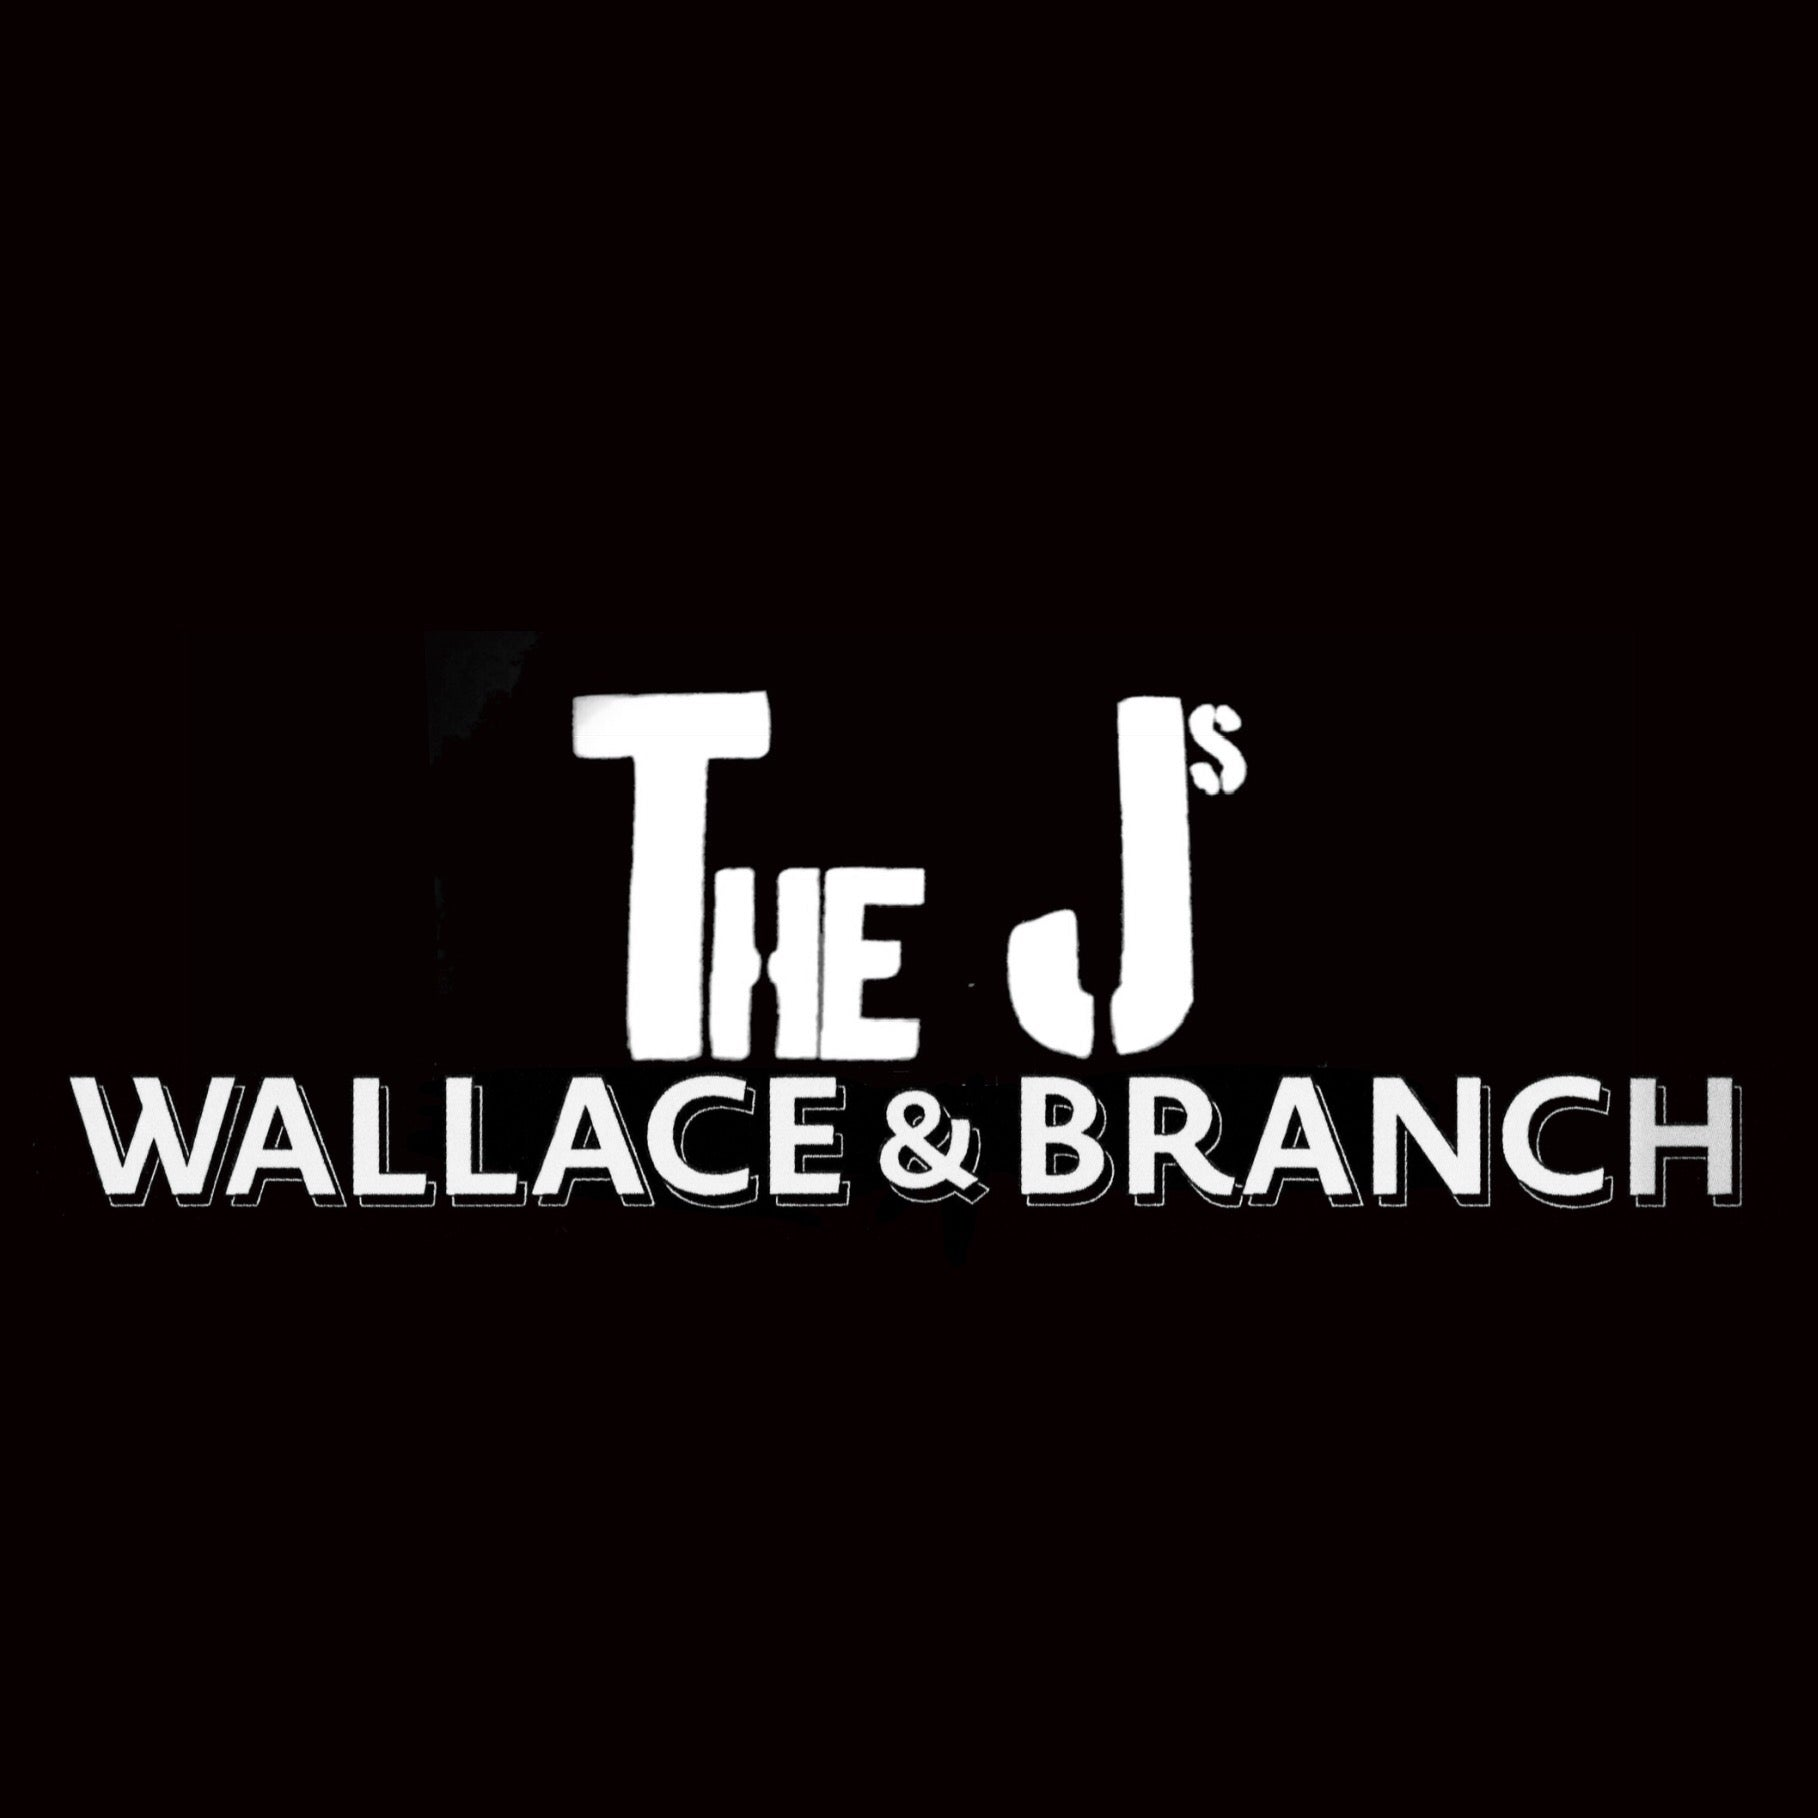 Wallace & Branch - The J's